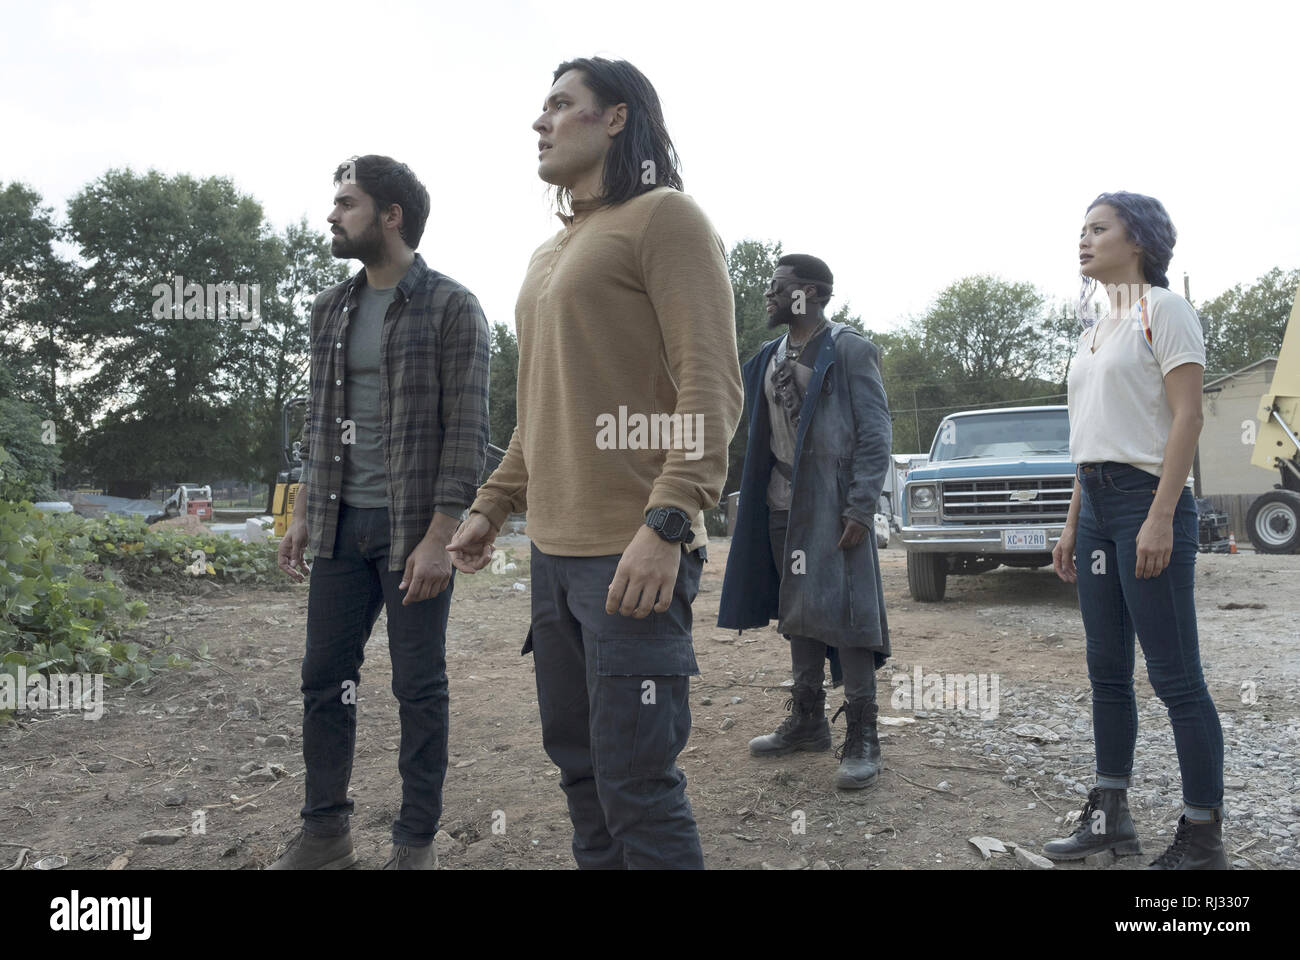 Sean Teale, Blair Redford, Michael Luwoye, Jamie Chung, 'The Gifted' Season 2 (2019)  Credit: Fox Broadcasting Co. / The Hollywood Archive - Stock Image